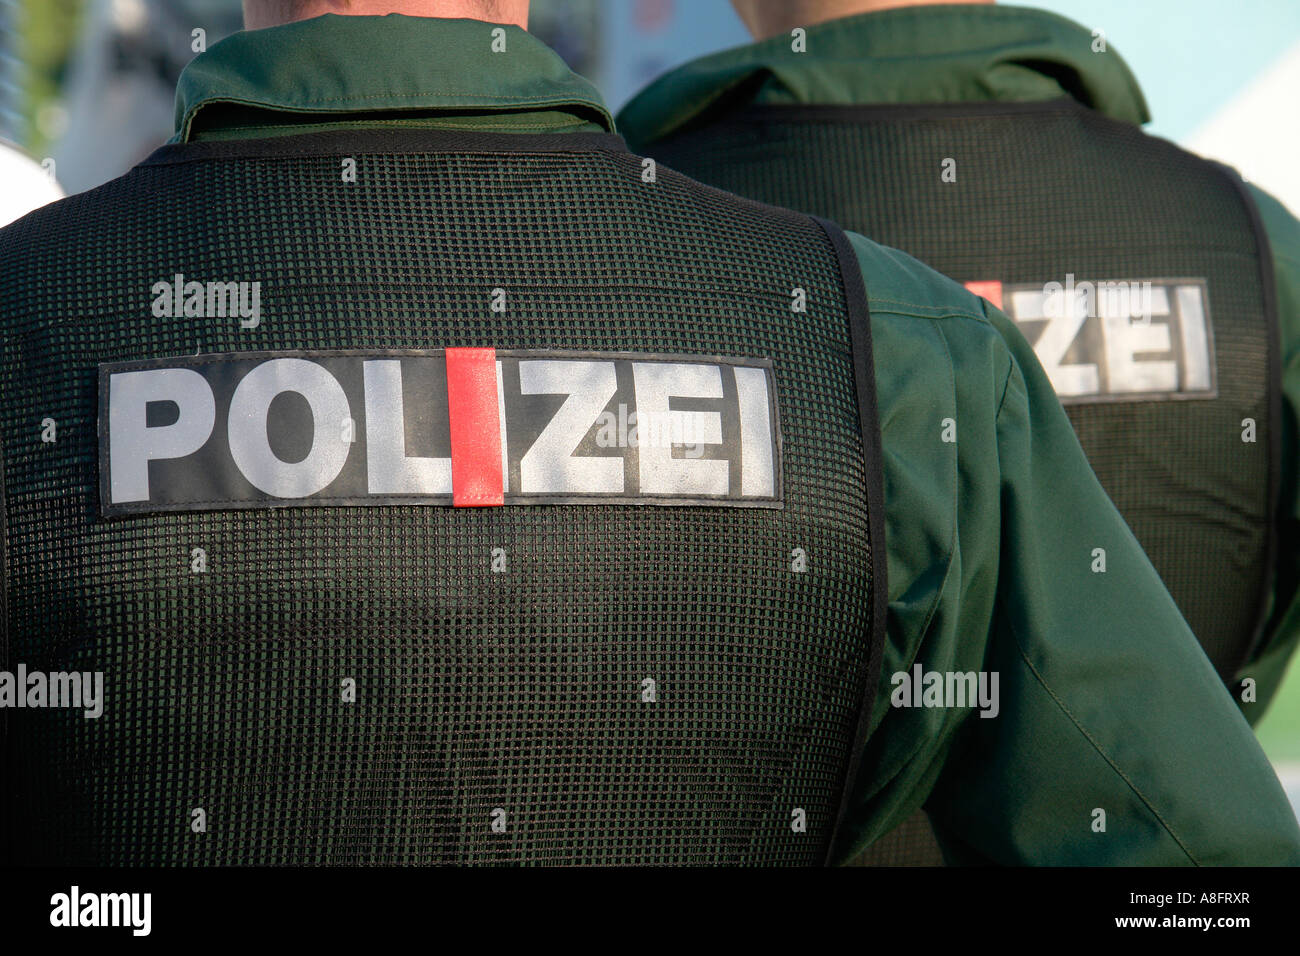 Police force on duty at football game - Stock Image